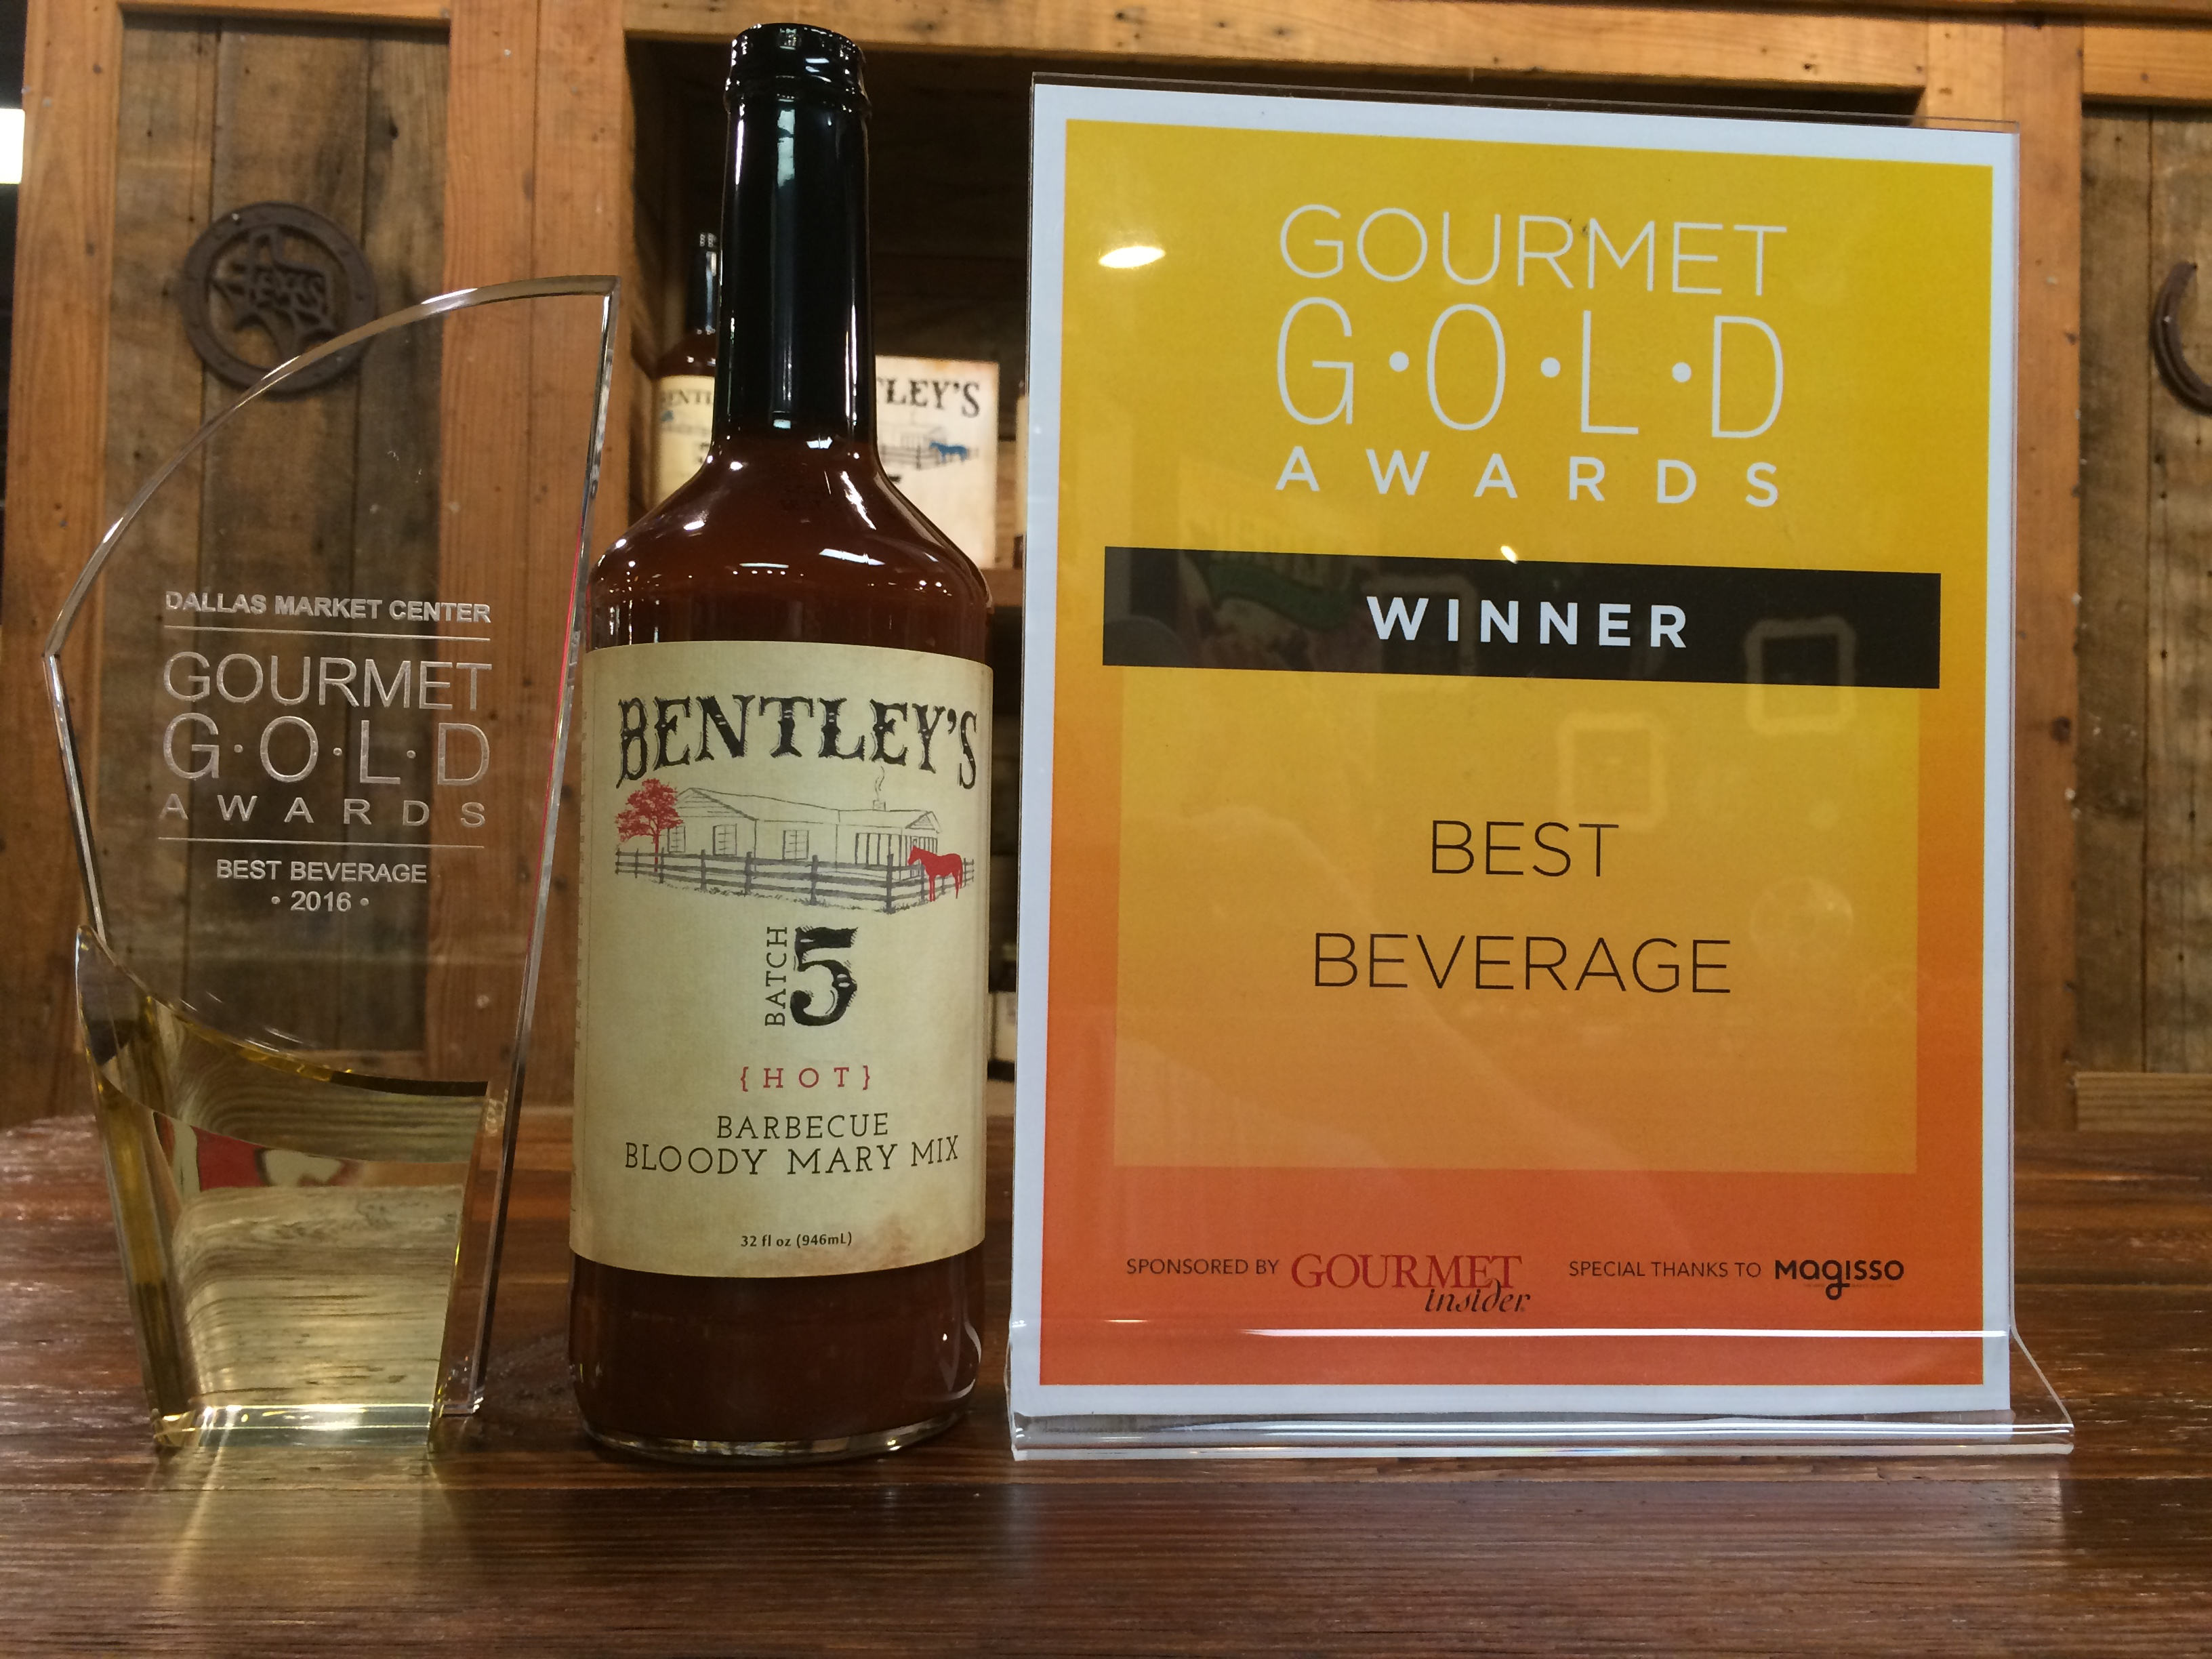 Gourmet Gold Award for Best Beverage